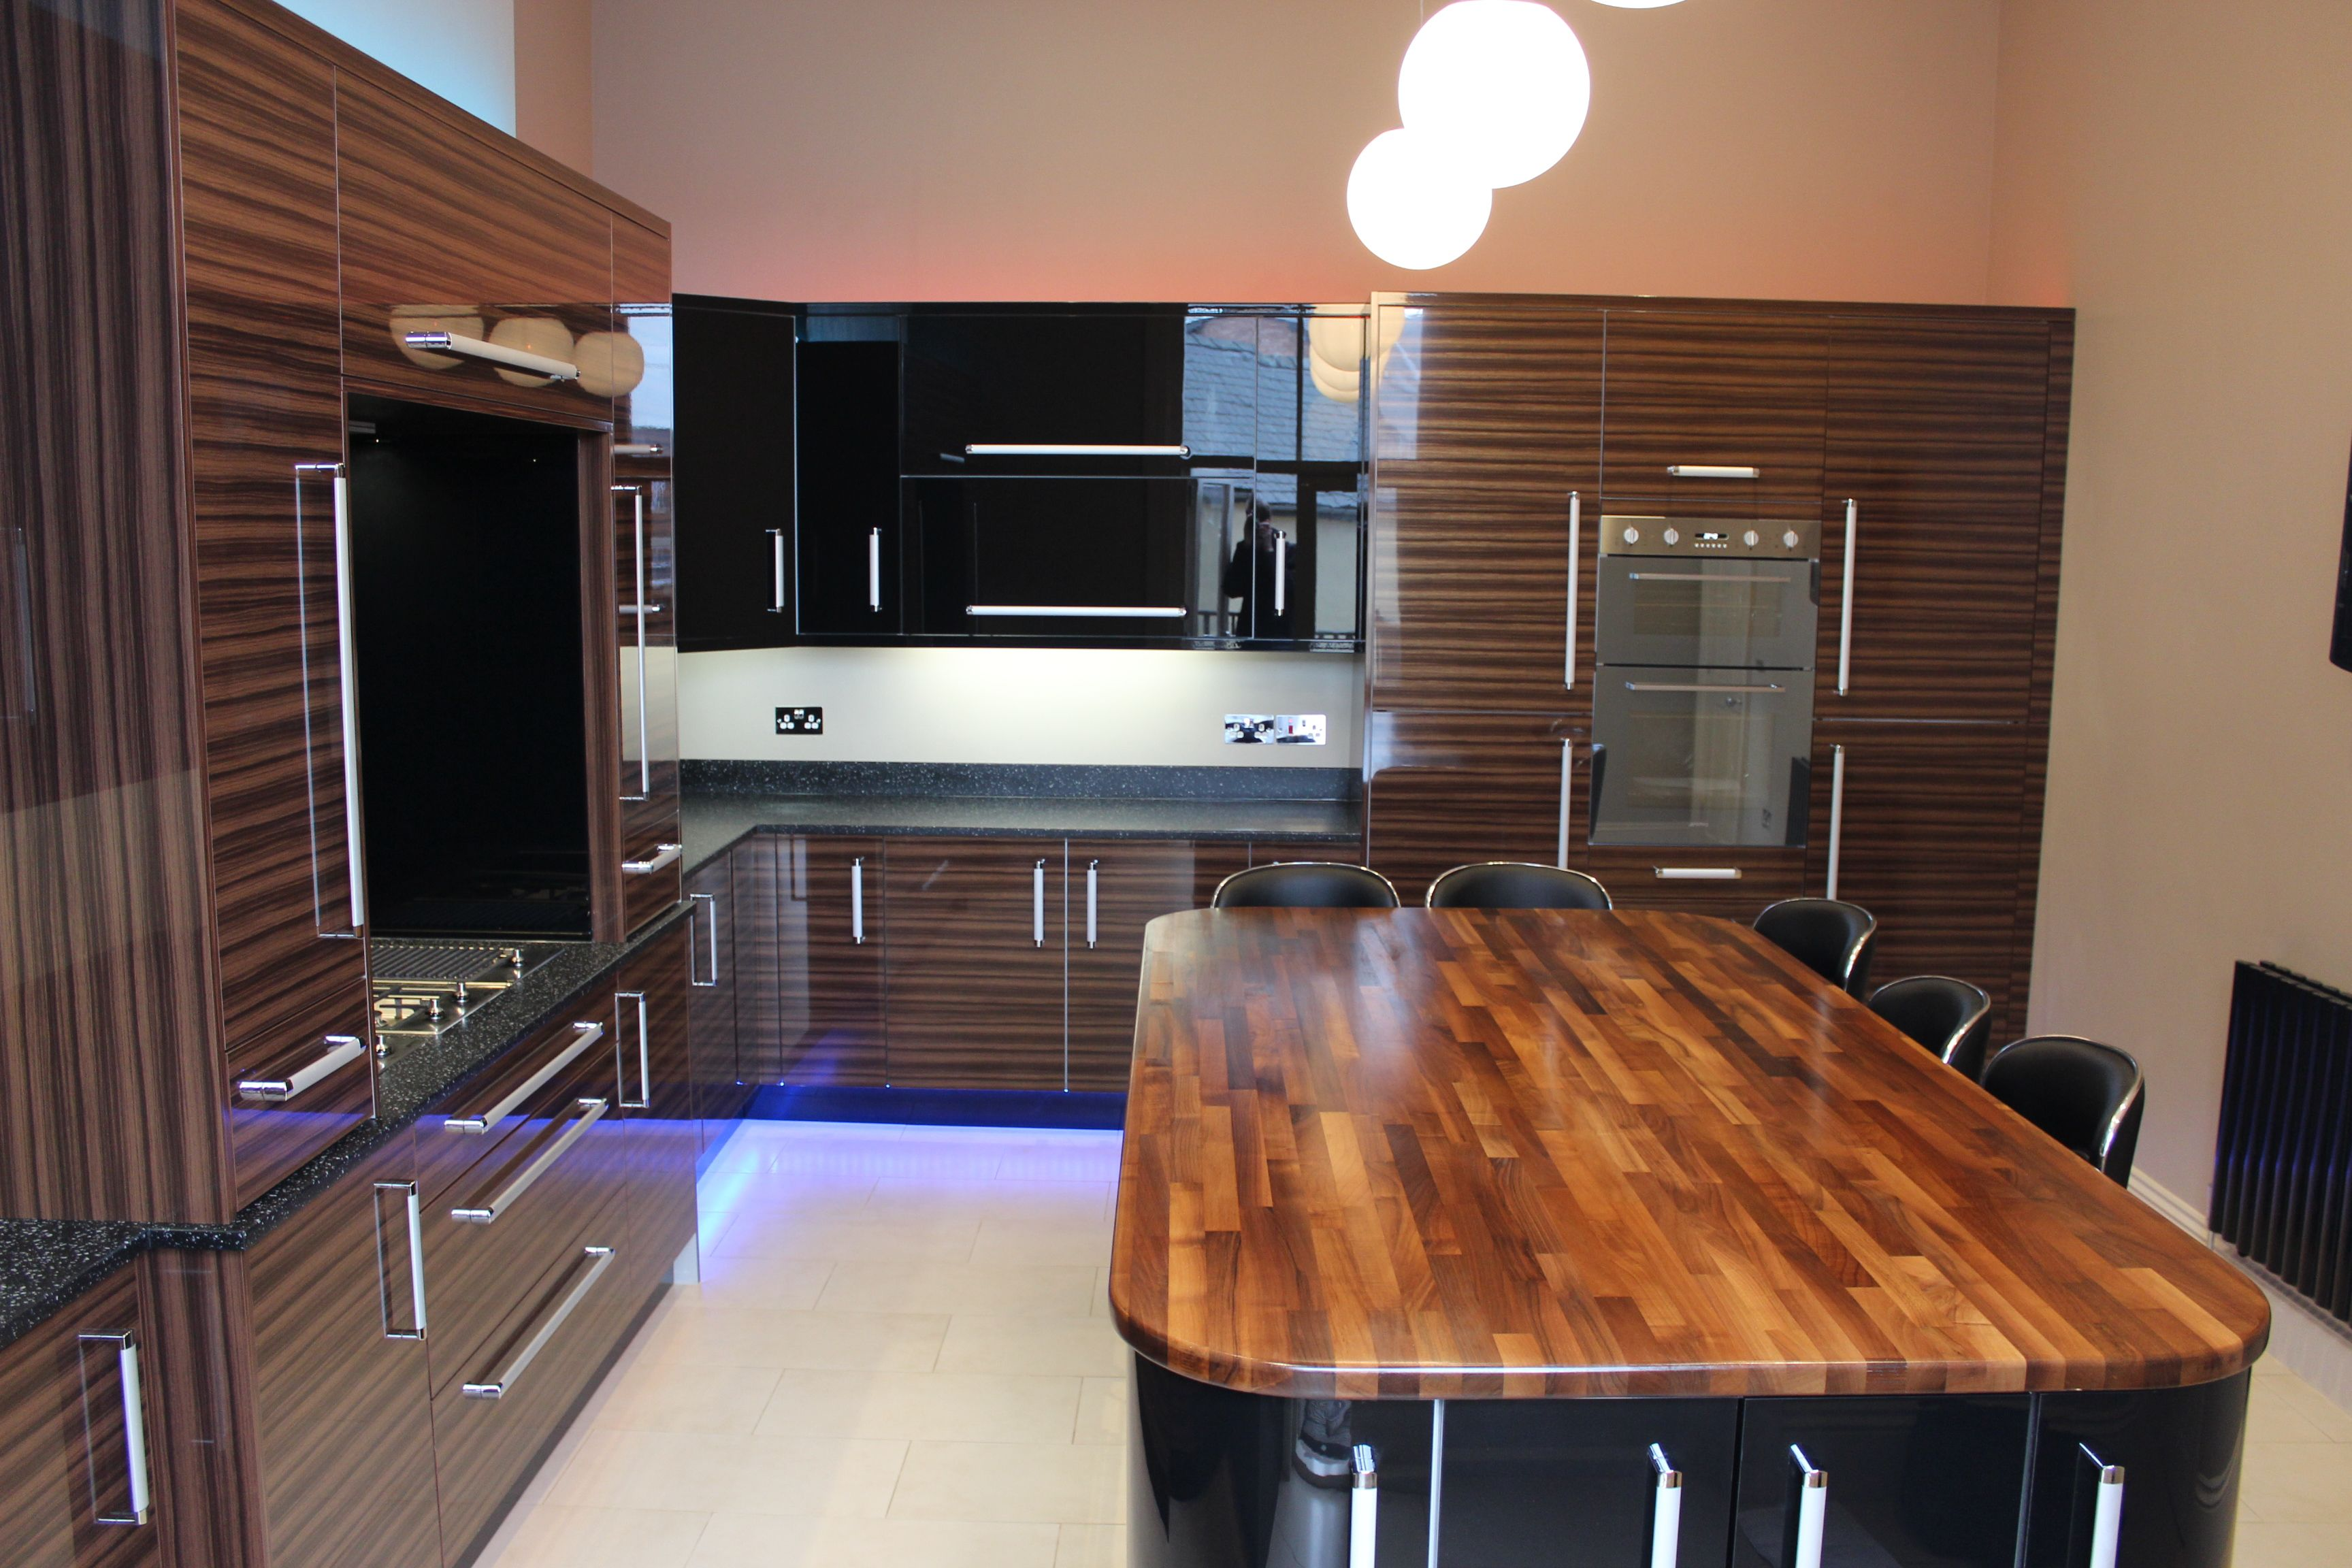 Cheap Kitchens | Discount Kitchens For Sale Online | Cheap Kitchen Cabinets  Mrs Chalmers   Ripon